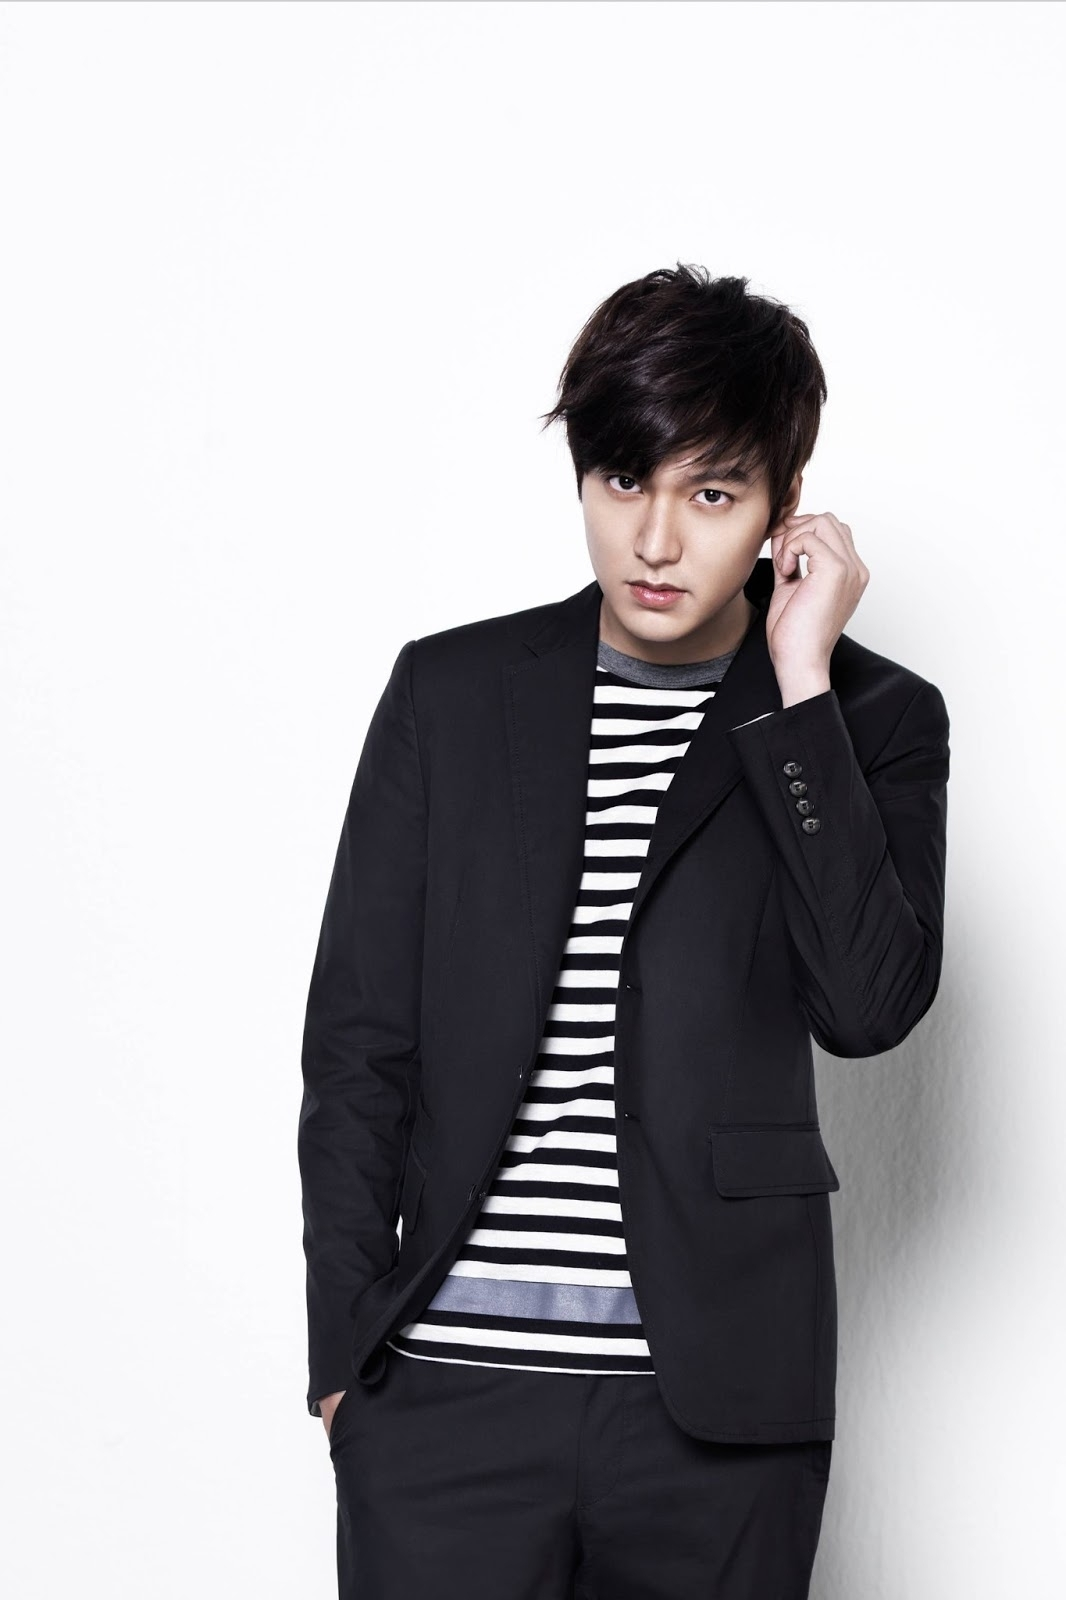 lee min ho wallpaper - bdfjade